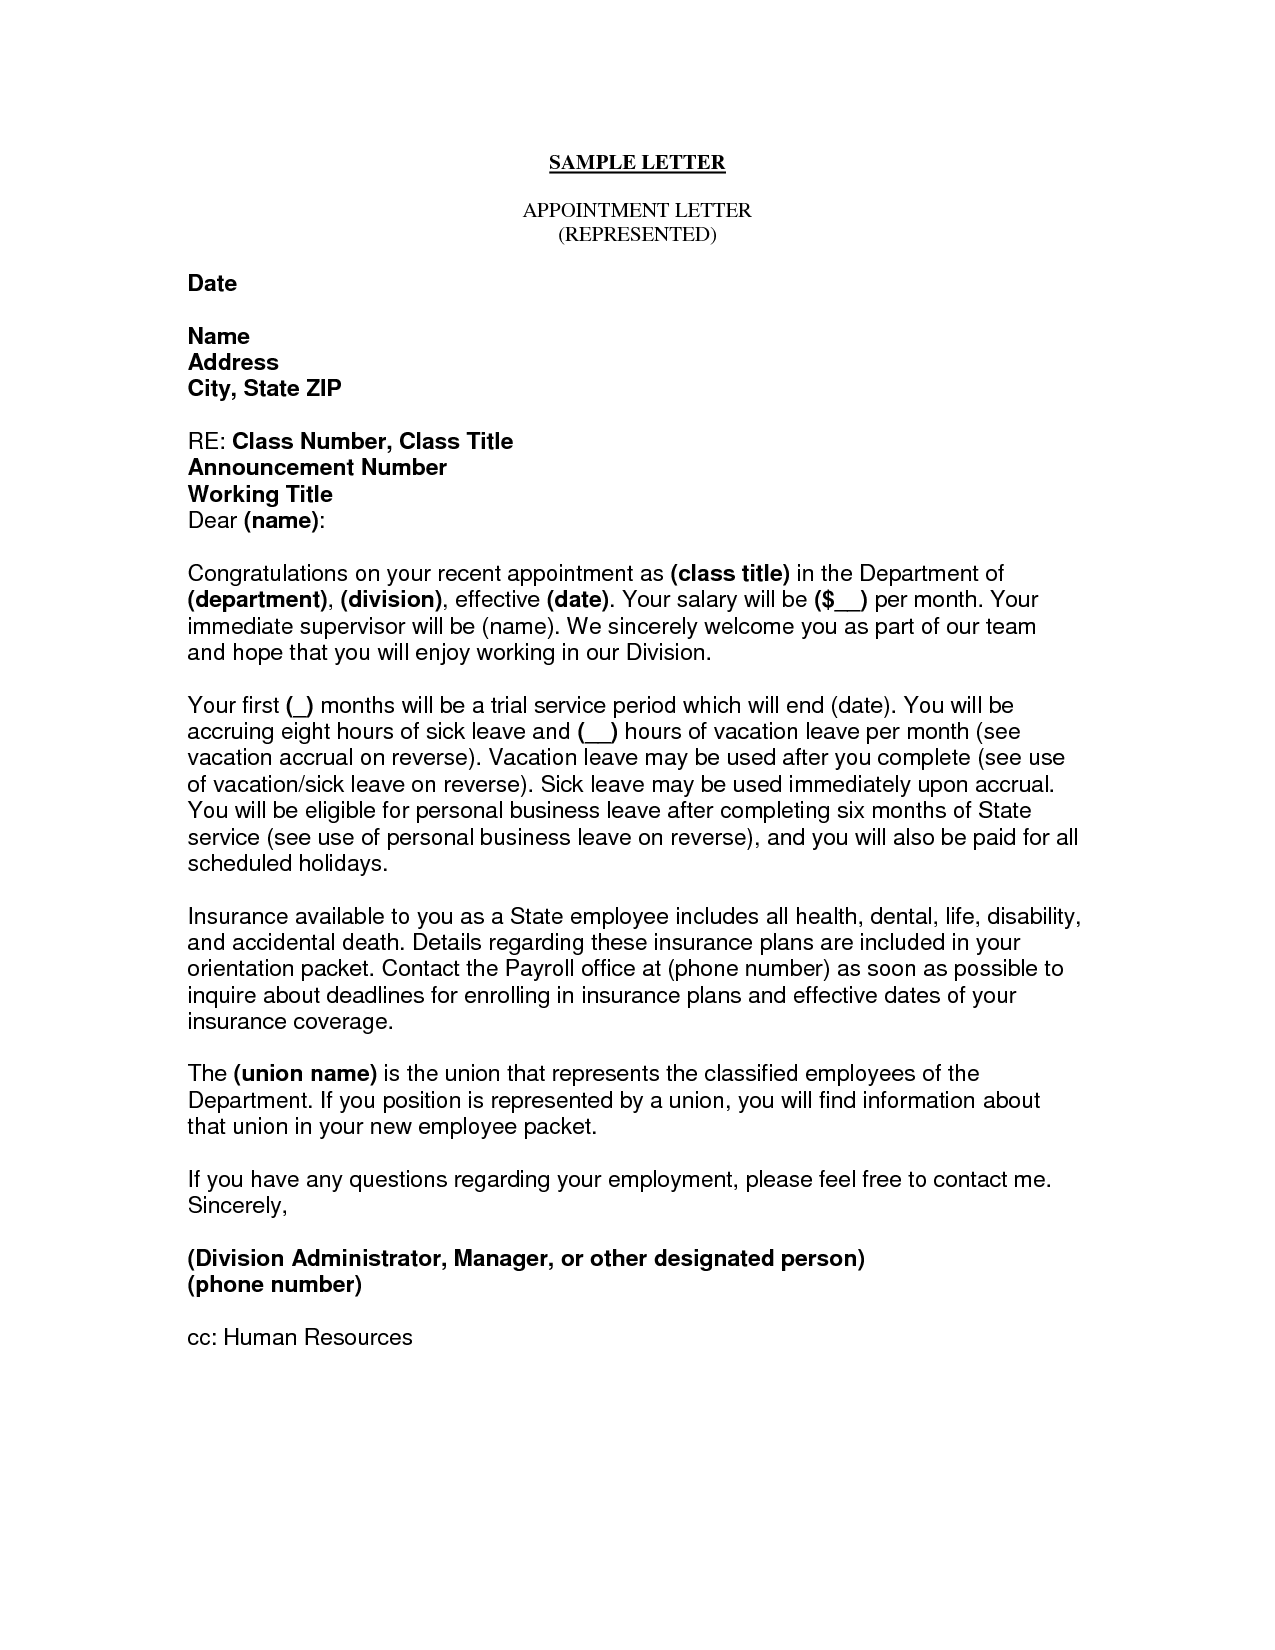 Business appointment letter this letter is used in any business business appointment letter this letter is used in any business organizations for getting the appointment templates spiritdancerdesigns Images